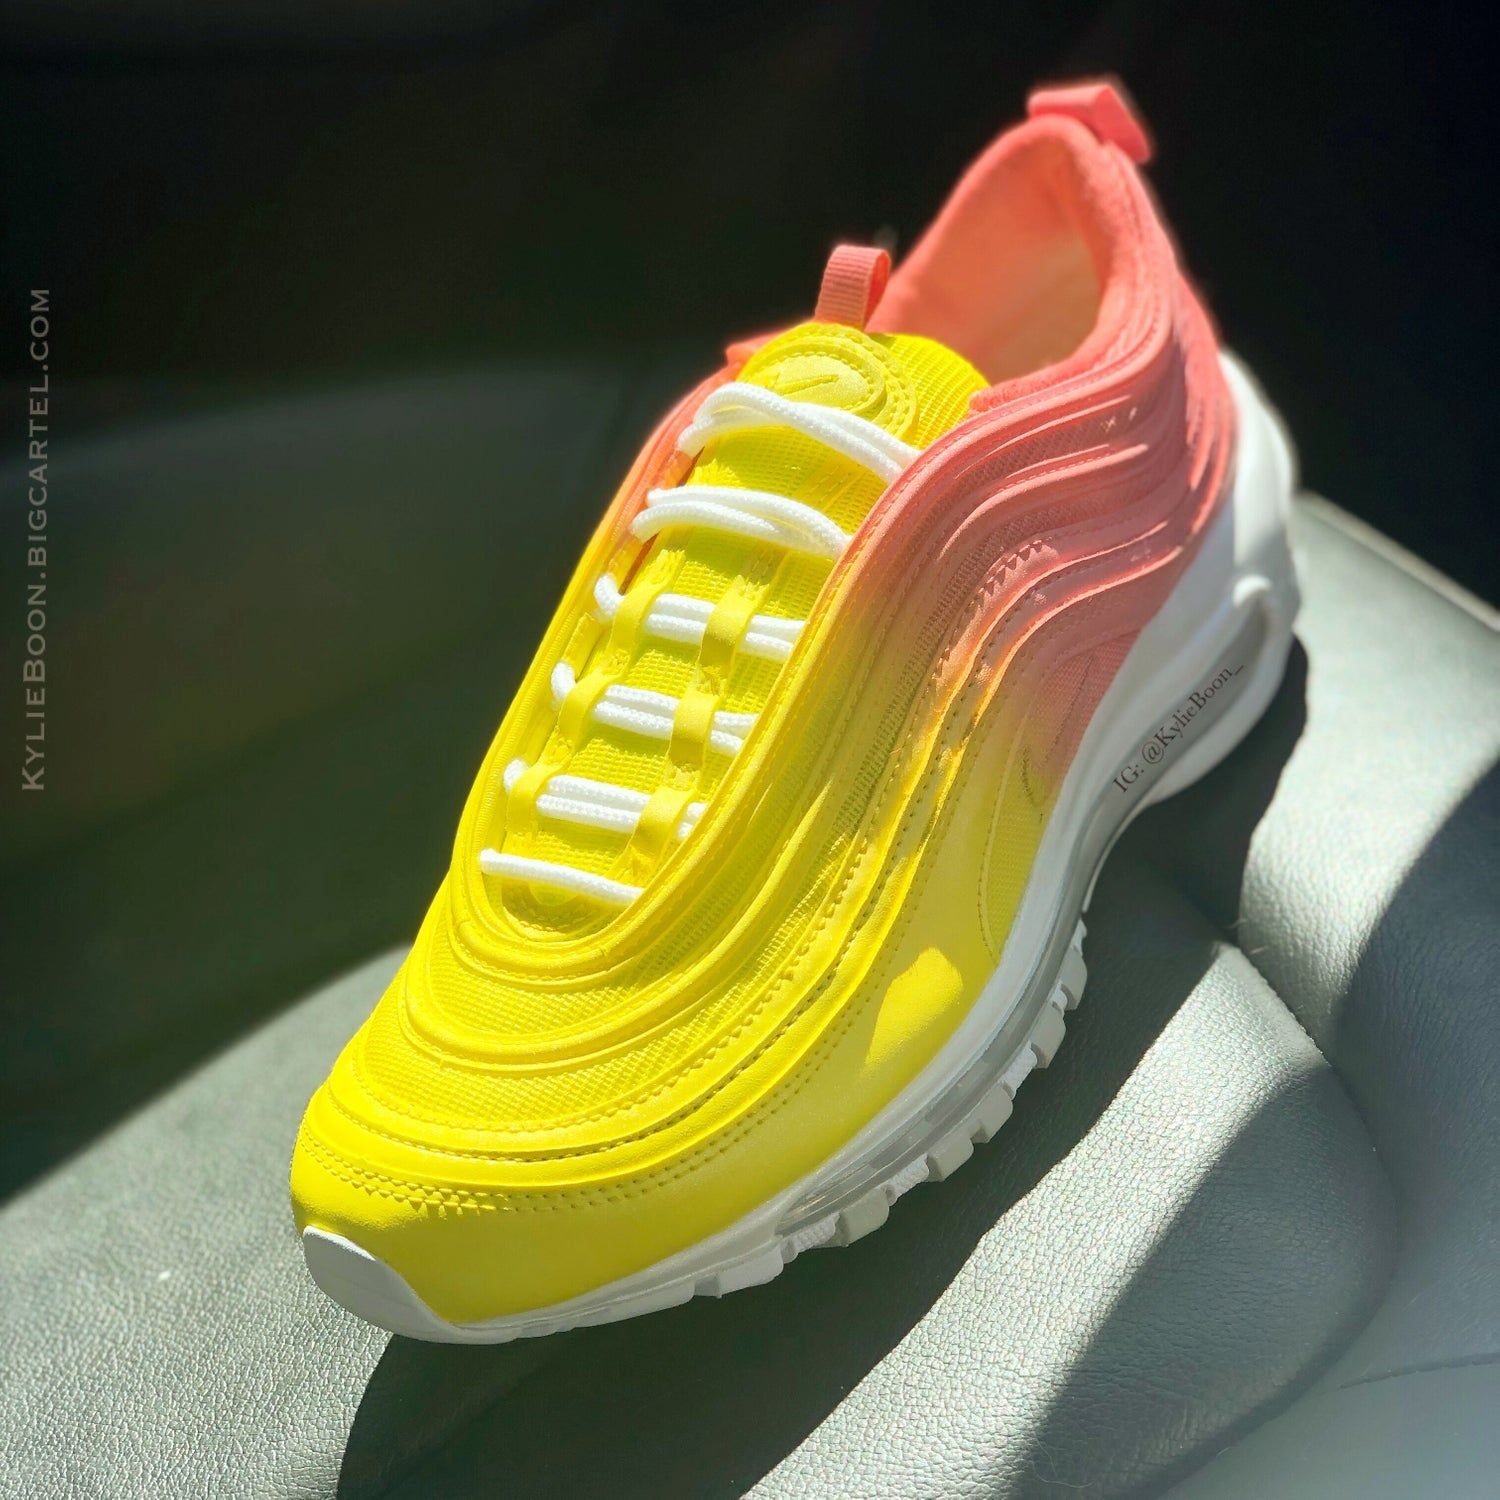 Image of Nike Air Max 97 x KylieBoon